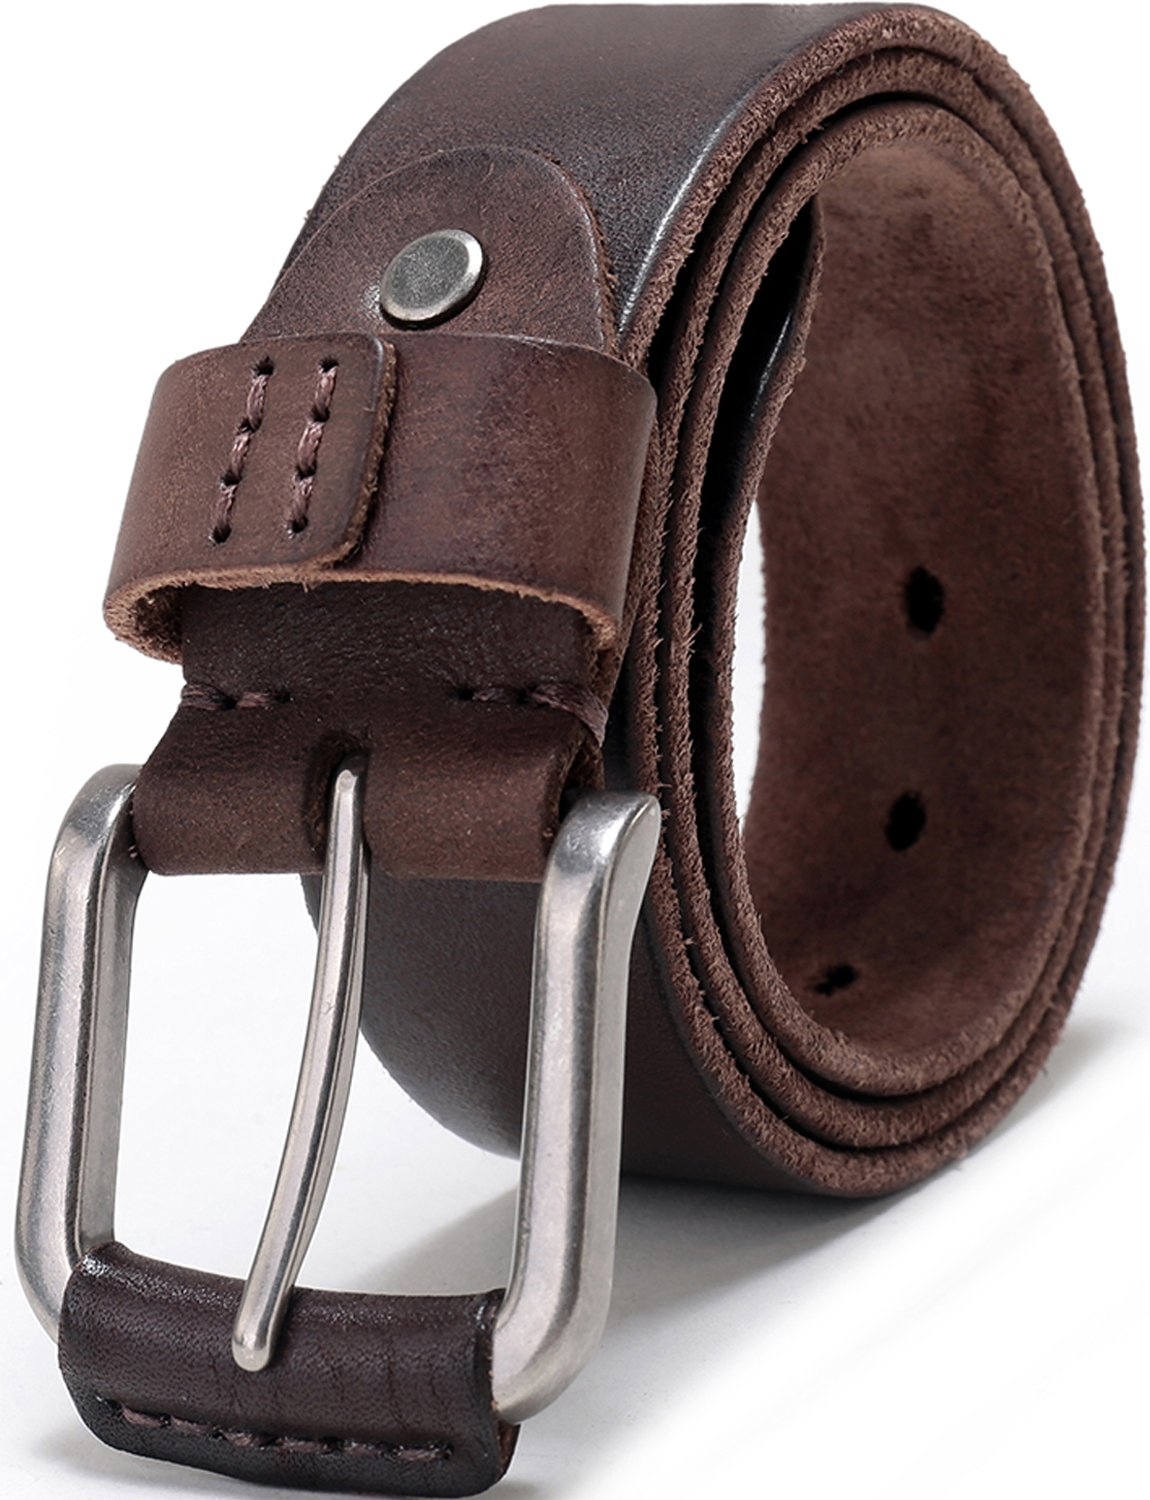 Beltox Fine Men's Full Grain 1 1/2'' Italian Leather Belt with Anti-nickel Buckle … … (50-52, coffee)